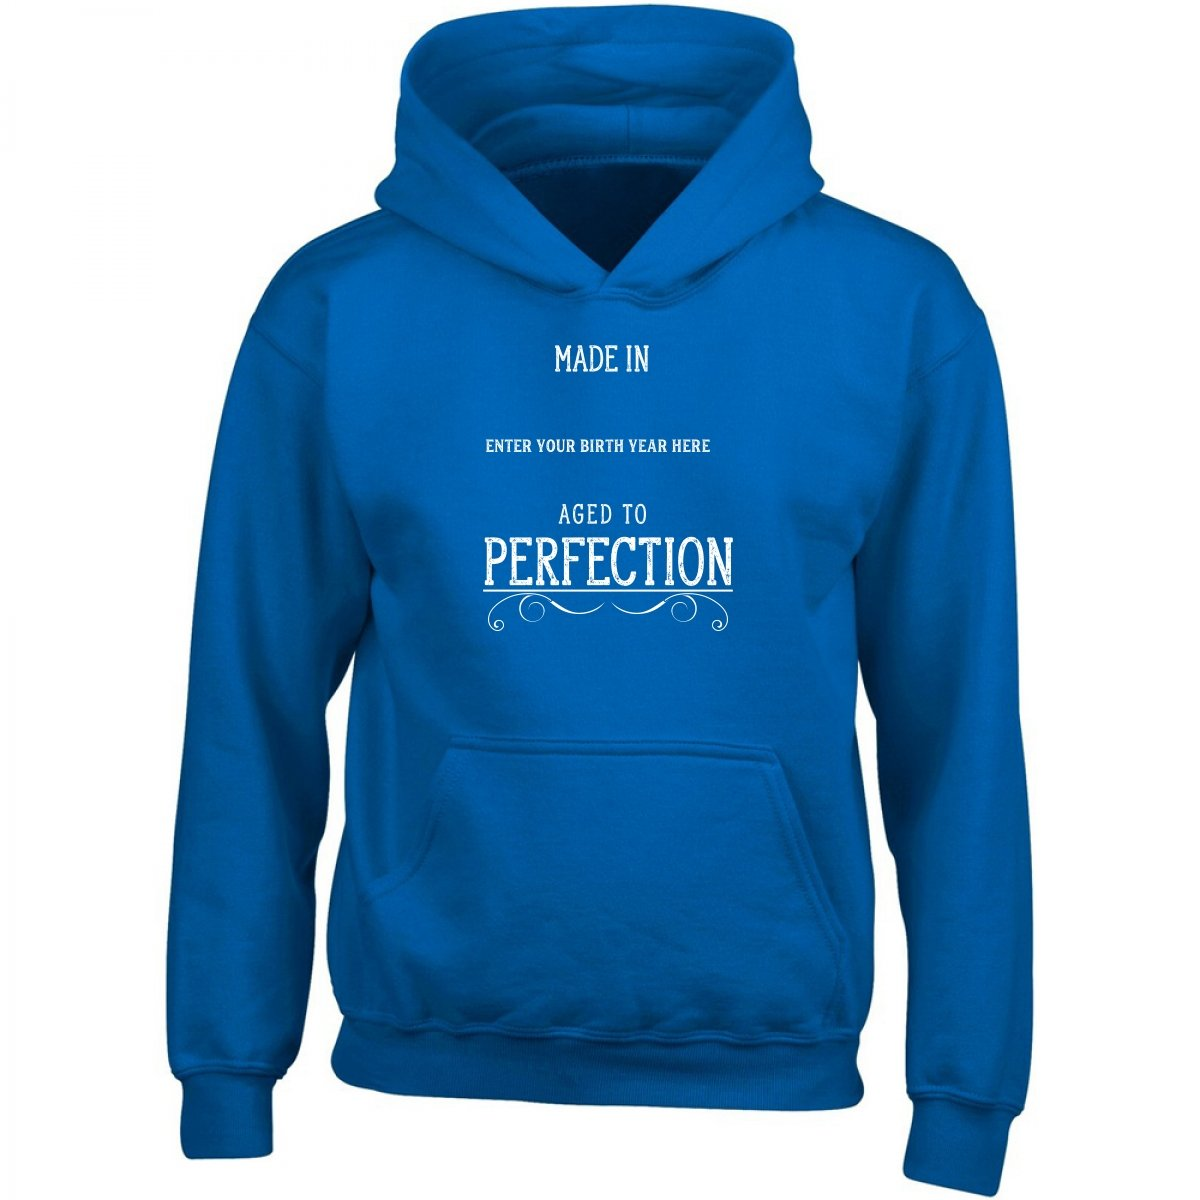 Made In Enter Your Birth Year Here Aged To Perfection Adult Hoodie